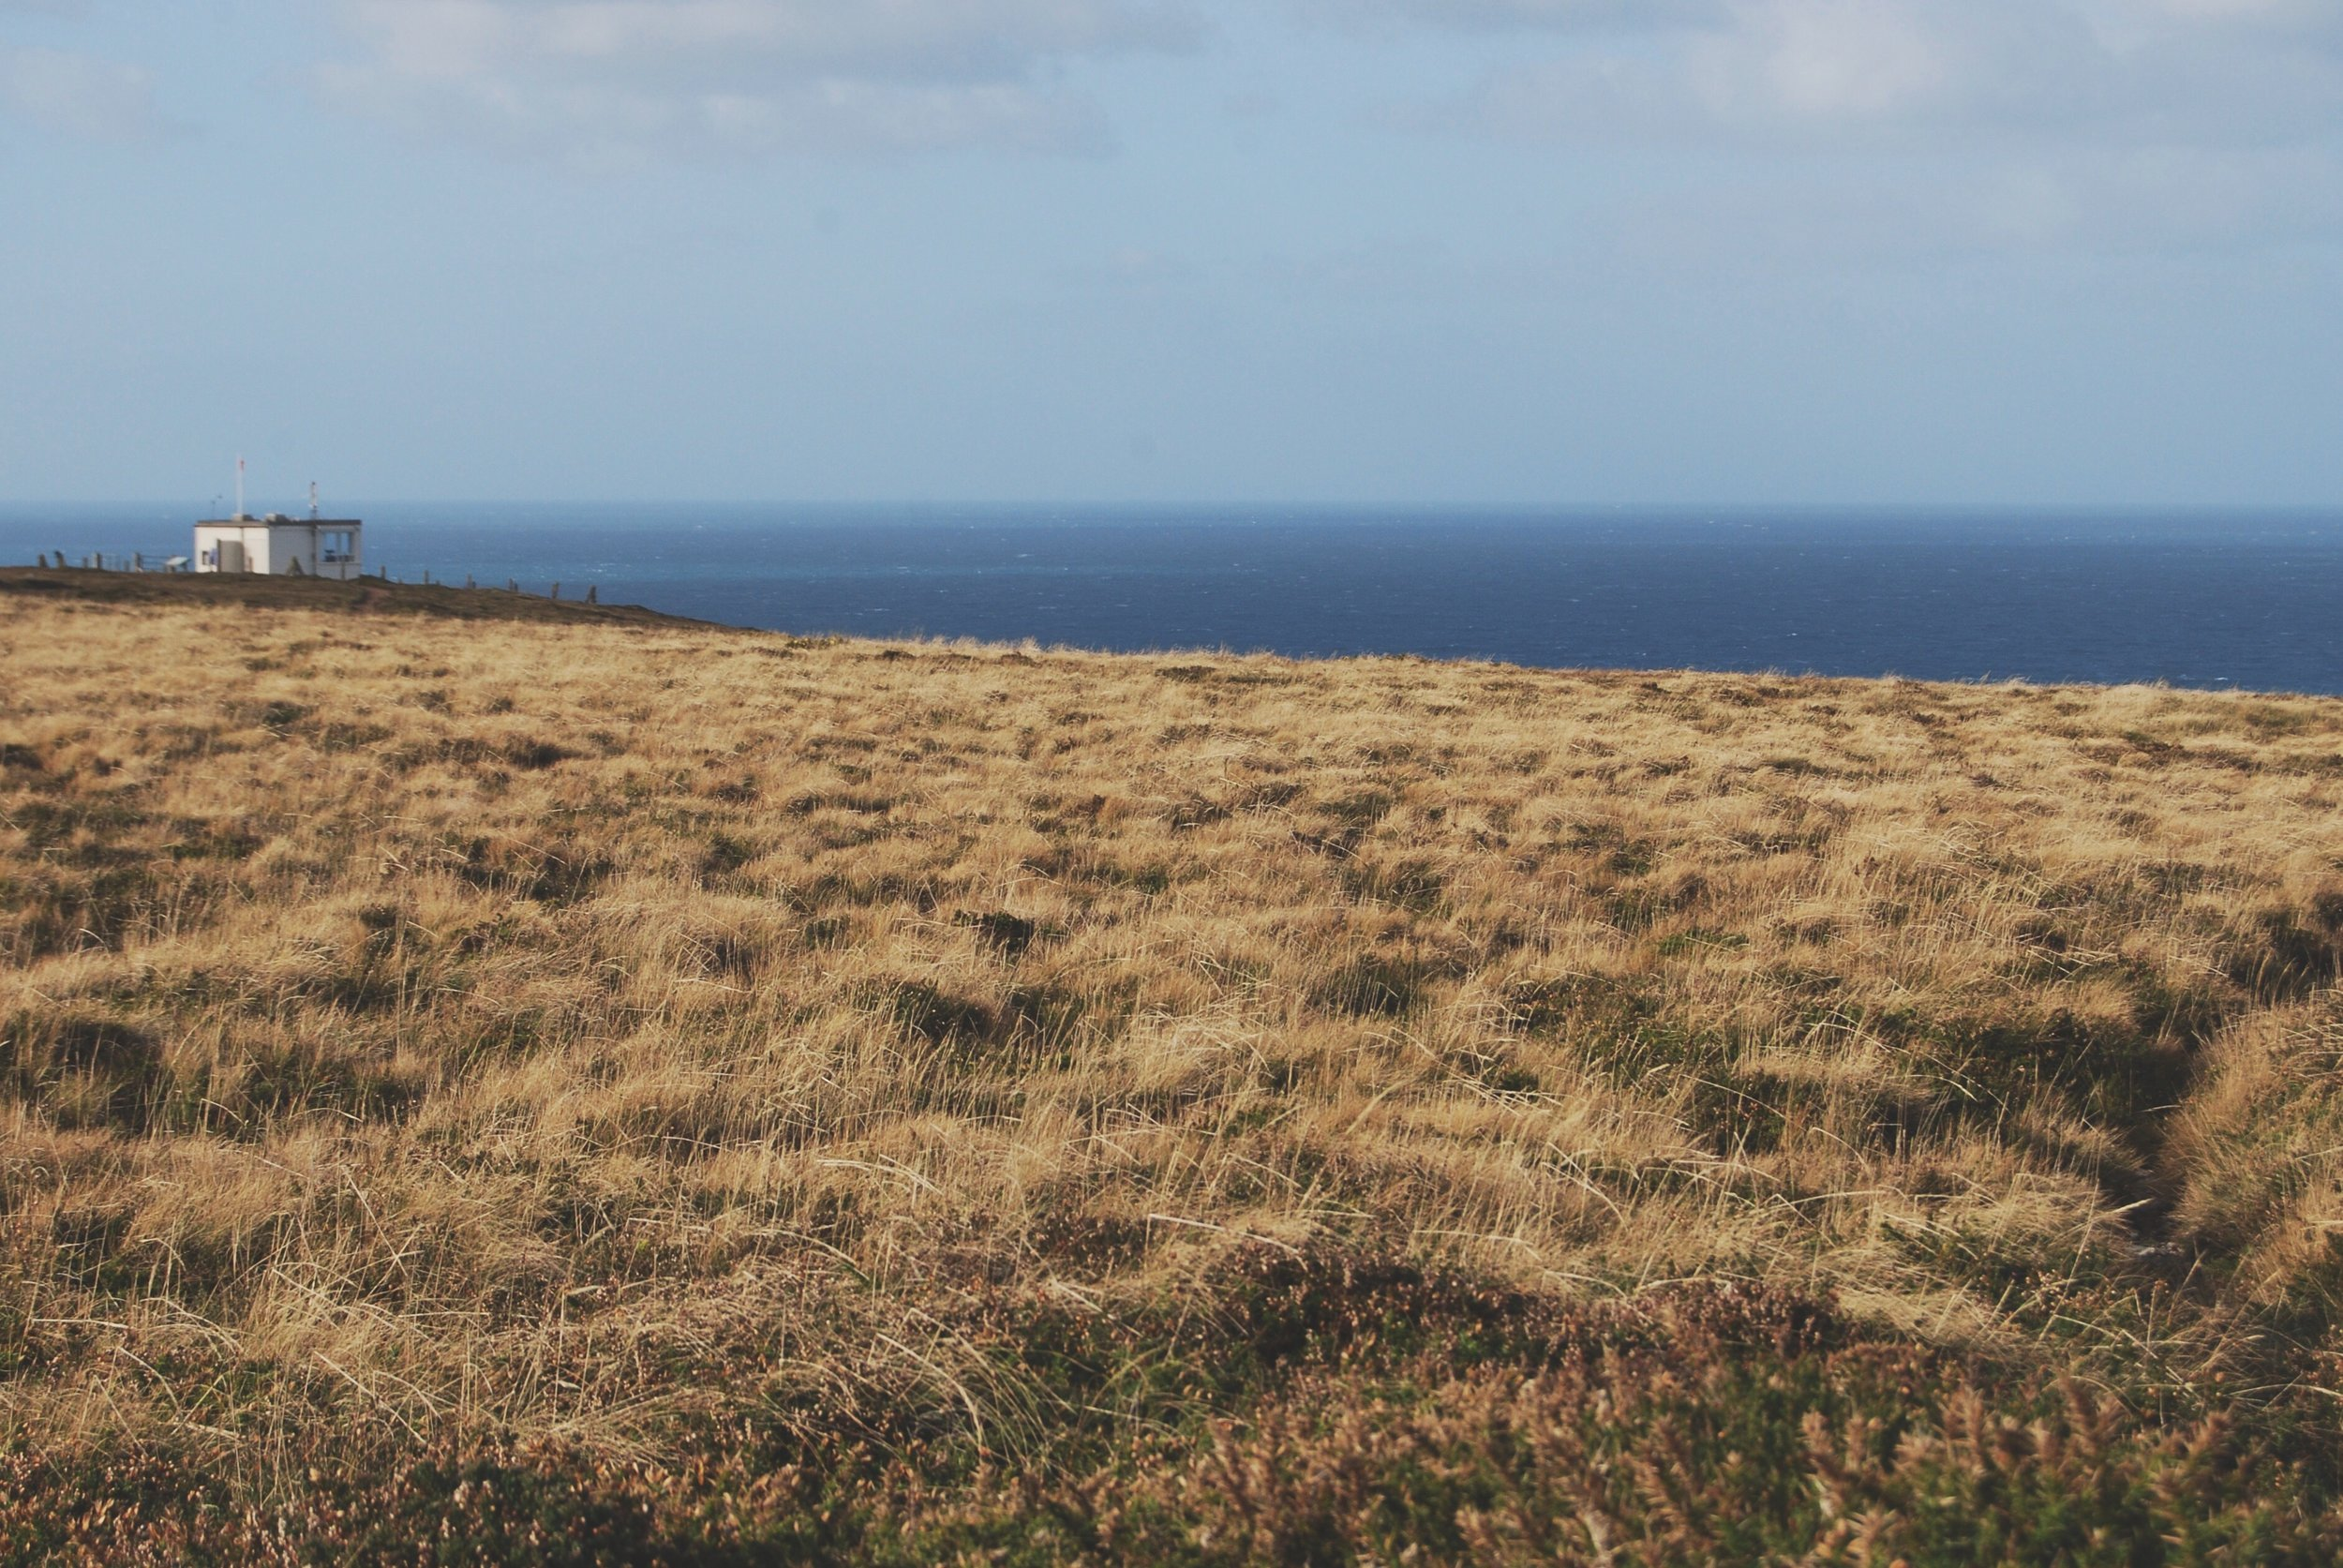 On the other side of the clay pit, the hilltop gives way to the ocean. the view never fails to inspire and energise me.